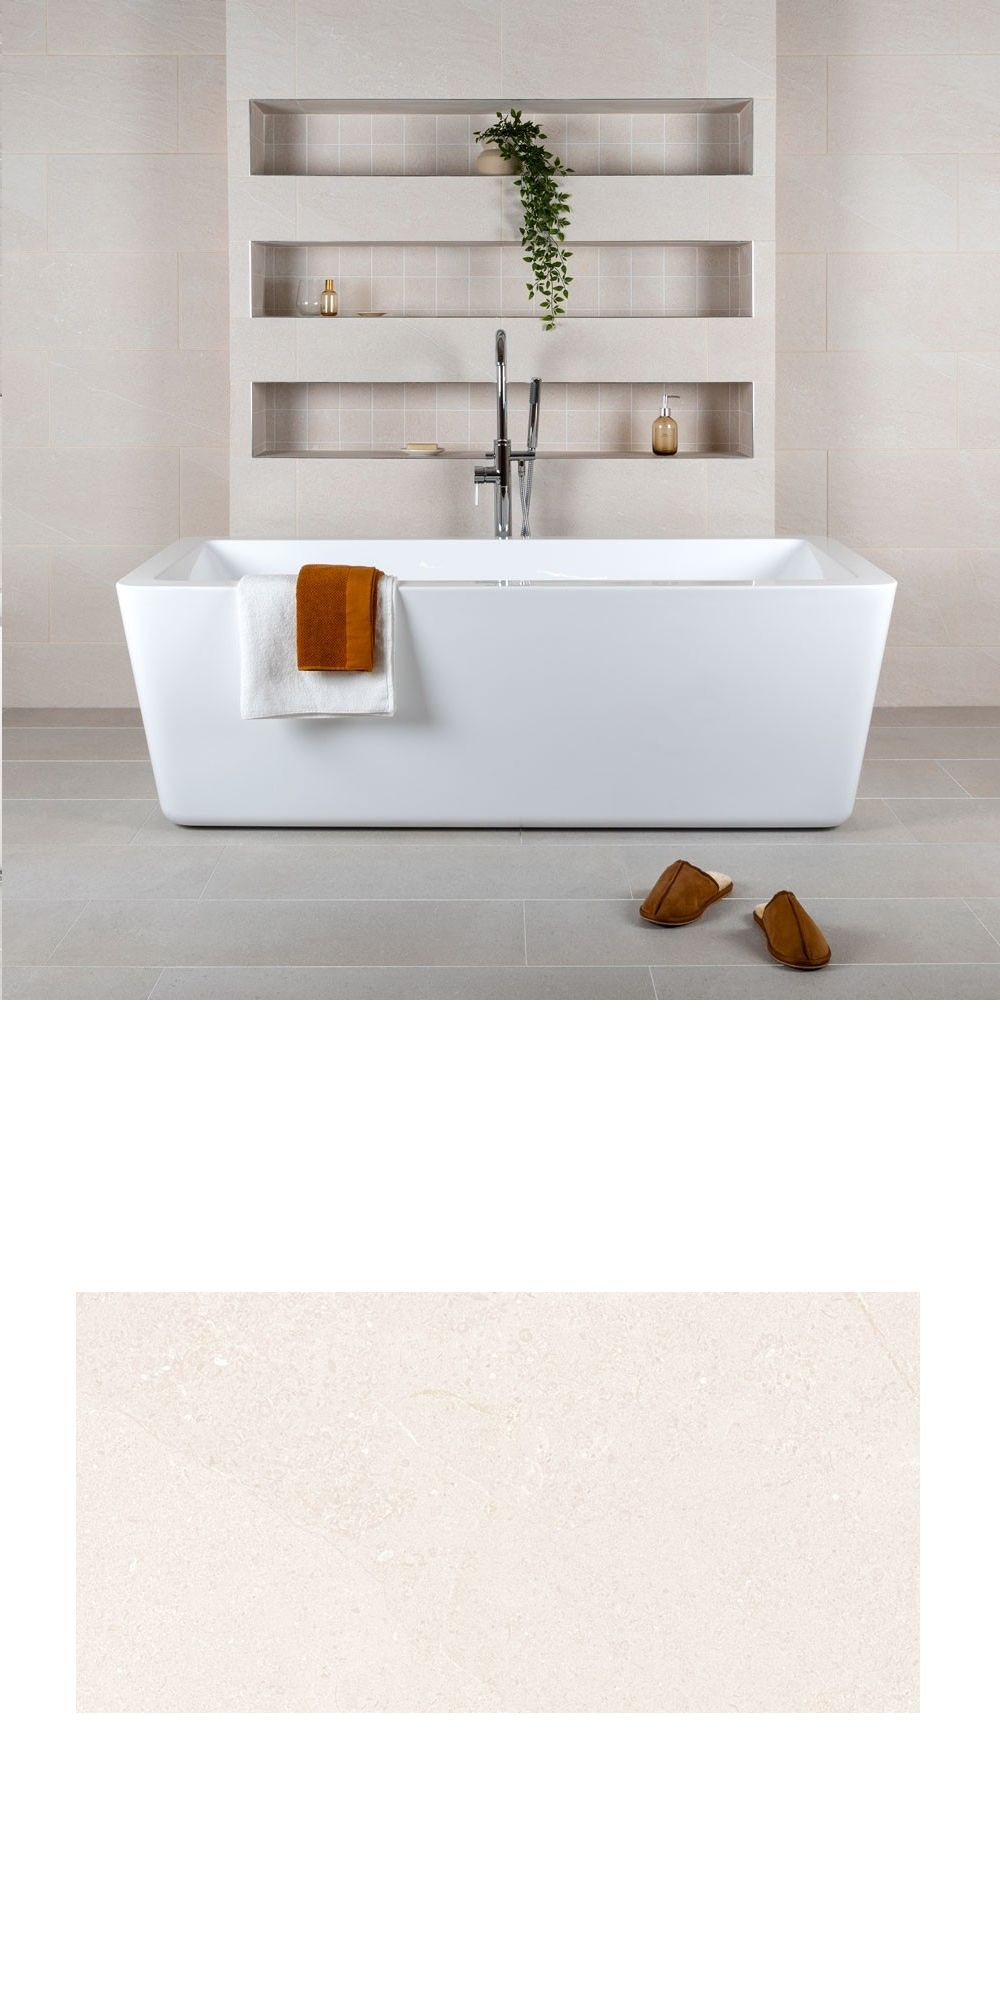 Create A Charming New Look On Your Wall Es With The Introduction Of These Earthstone Cream Tiles They Have Textured Stone Effect Design In Luscious